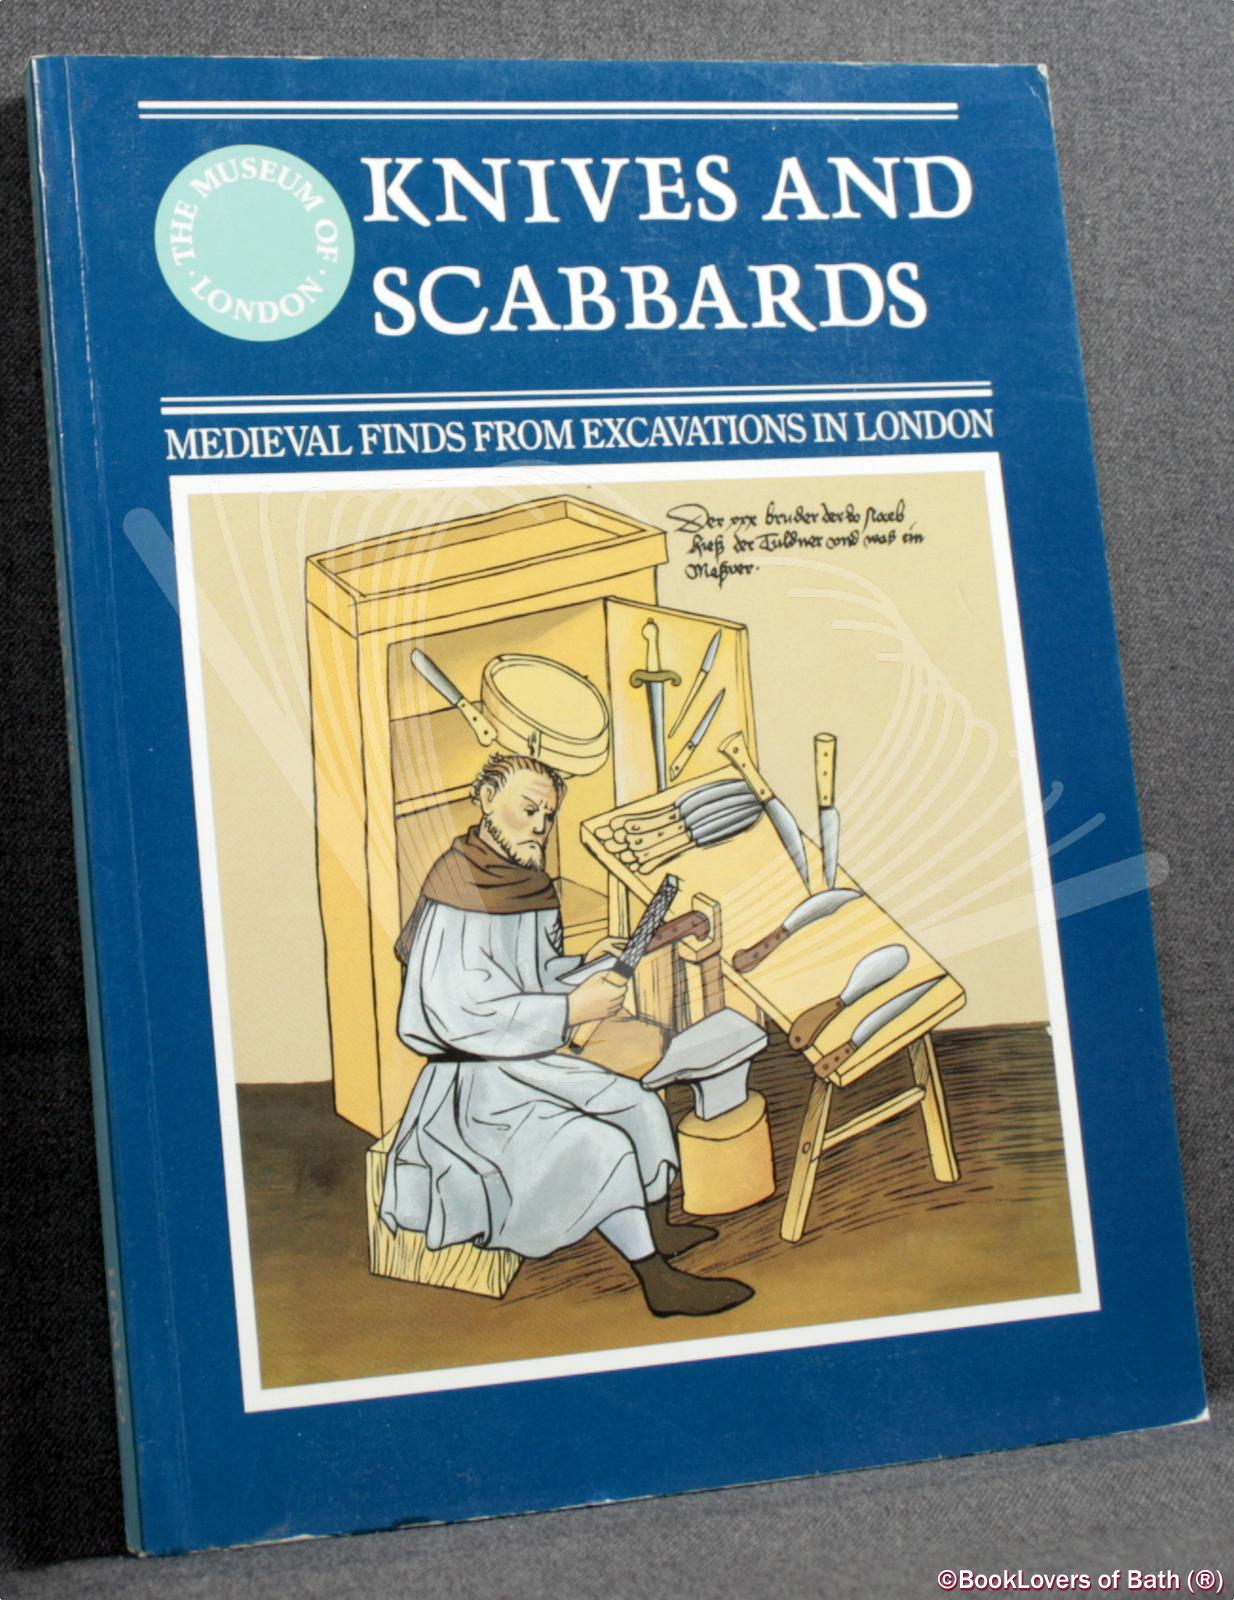 Knives and Scabbards: Medieval Finds from Excavations in London - J. Cowgill, M. de Neergaard, N. Griffiths with Contributions by F. O. Grew, A. G. Vince, T. Wilmott & P. Wilthew